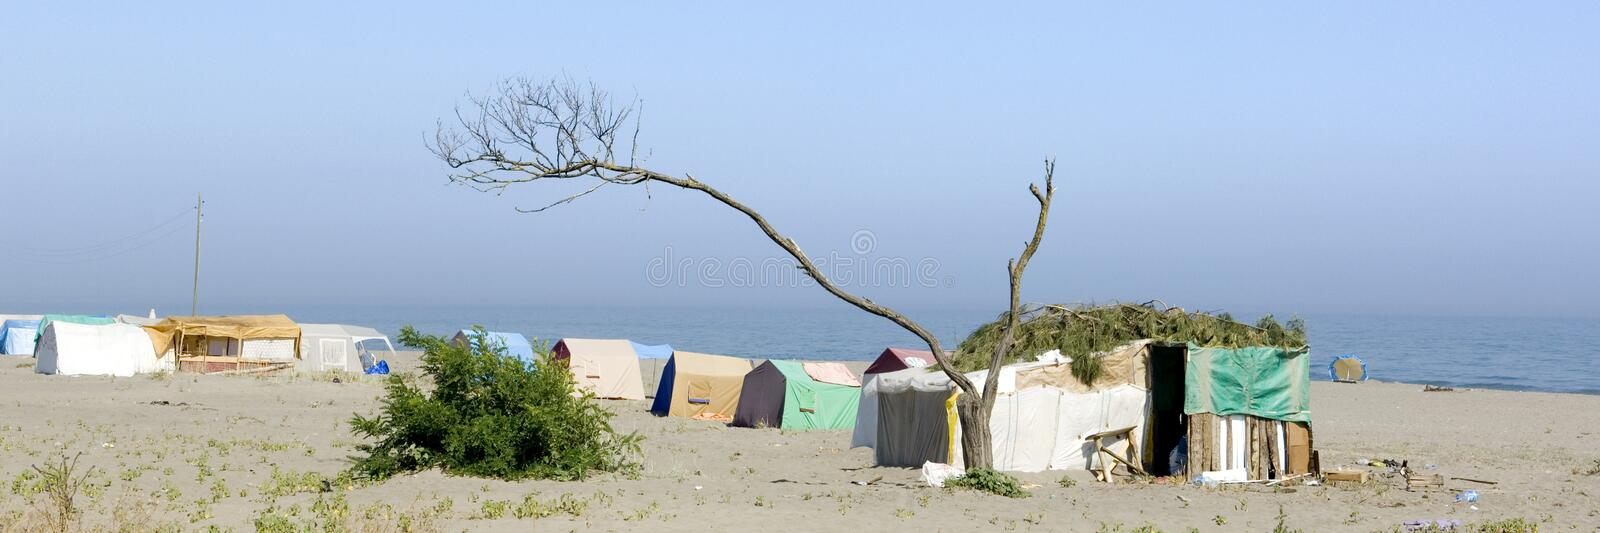 Poor camp on the beach. In Turkey royalty free stock photo